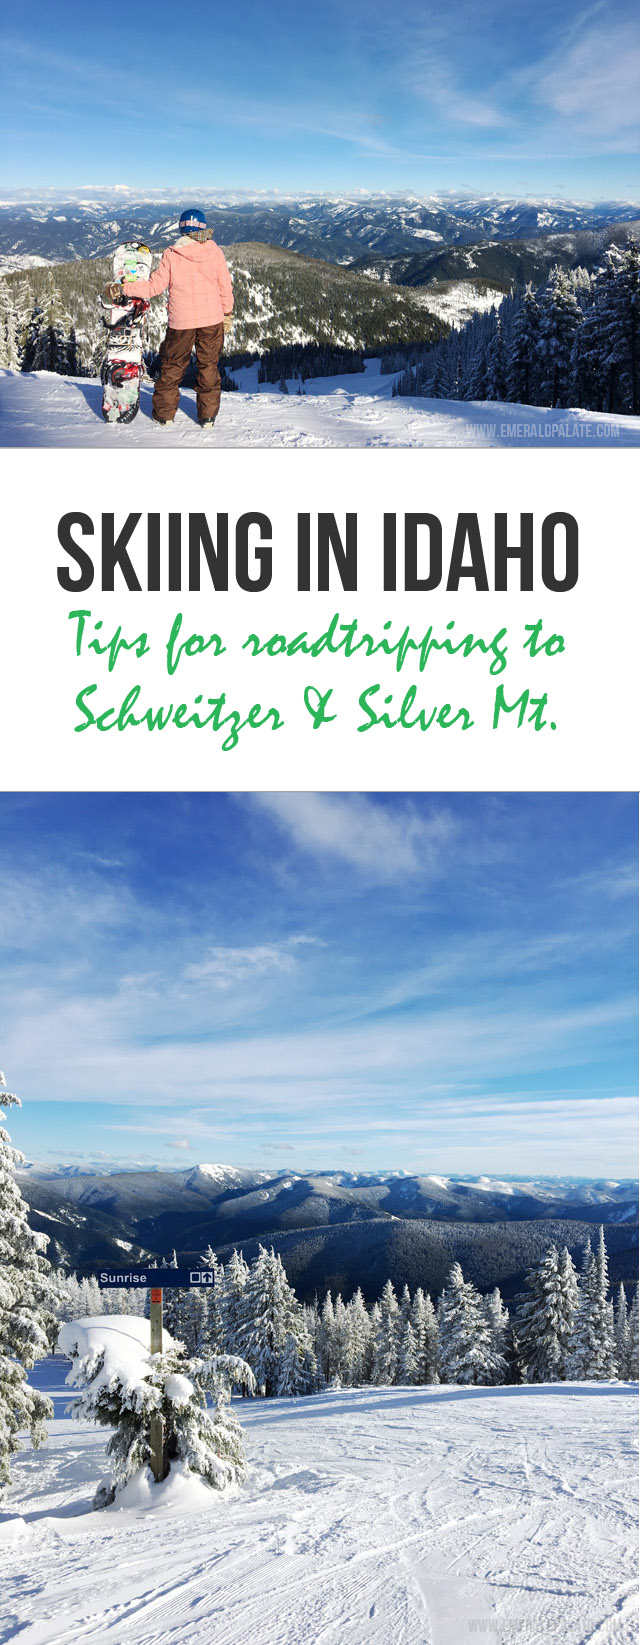 Tips for driving from Seattle to Idaho and making the most of your time skiing at Schweitzer Mountain and Silver Mountain in Idaho. Includes recommendations of what to eat, drink, and do while in northern Idaho during the winter.